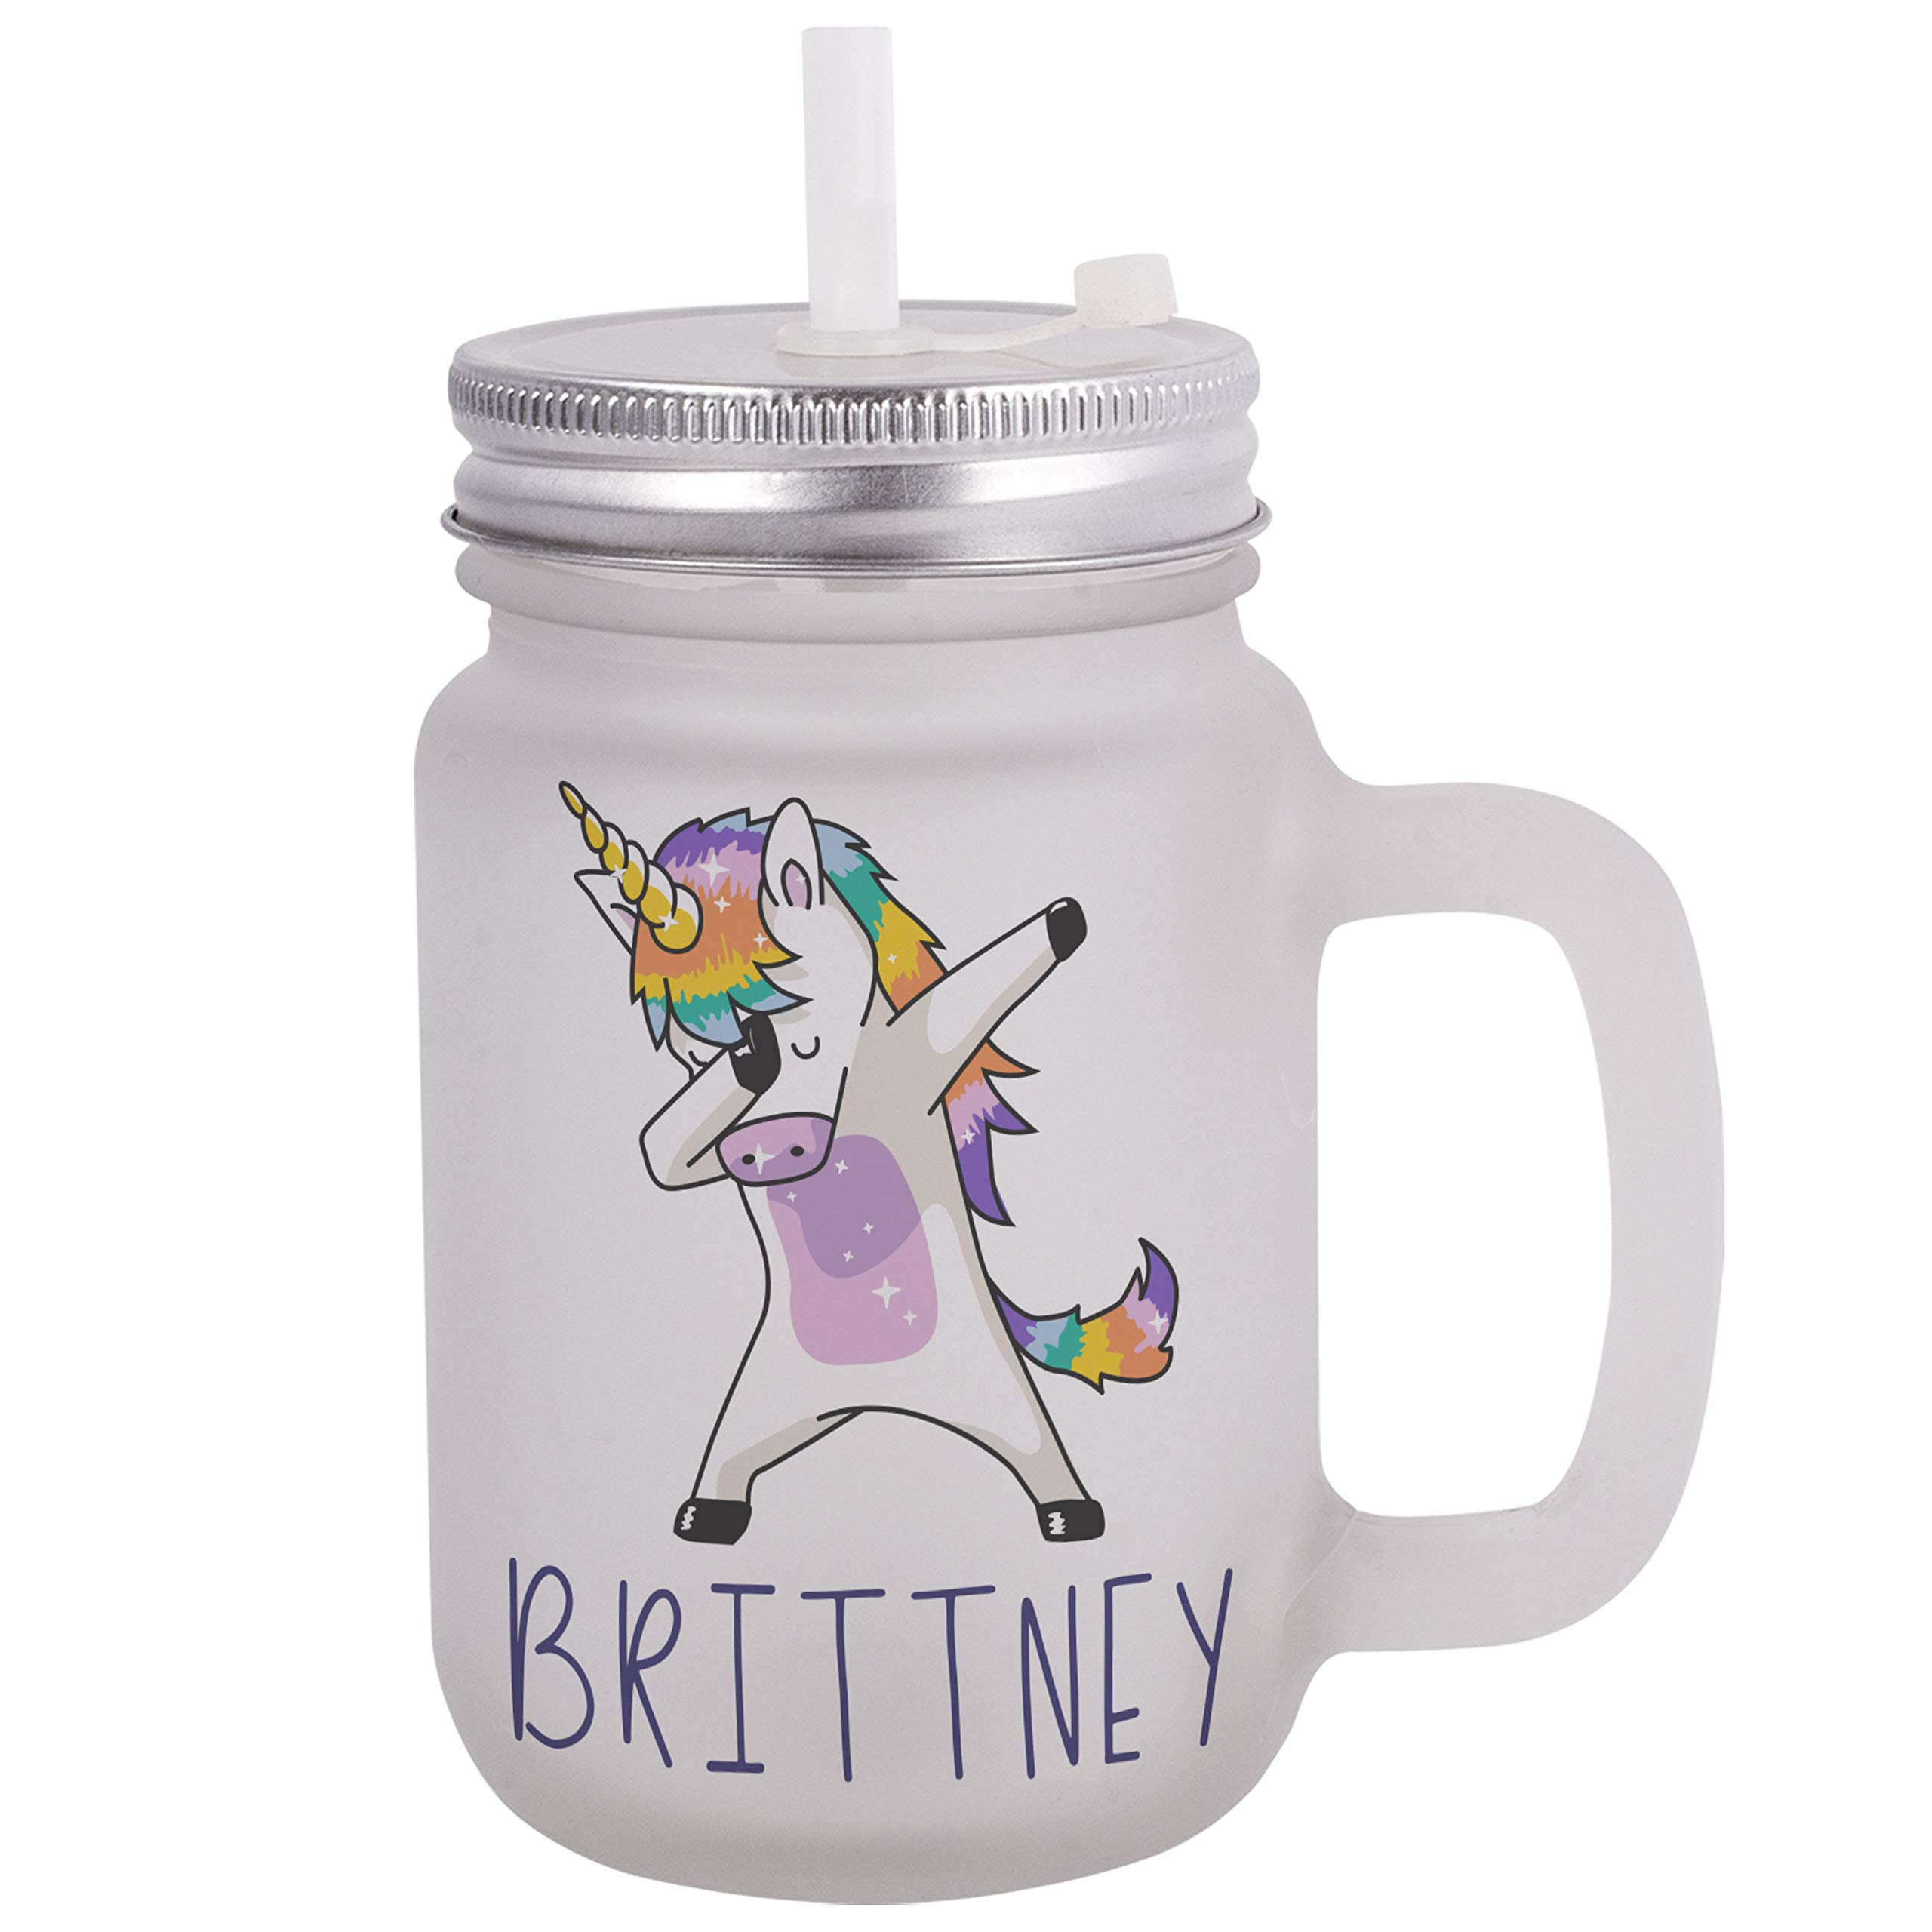 Personalized Gifts Dabbing Unicorn Coffee Mug - 12oz Frosted Mason Jar Coffee Mug with Lid and Straw -Birthday Gifts, Christmas Gifts, Mother's Day Gifts, Father's Day Gifts, Funny Mug for Kids by USA Custom Gifts (Image #1)